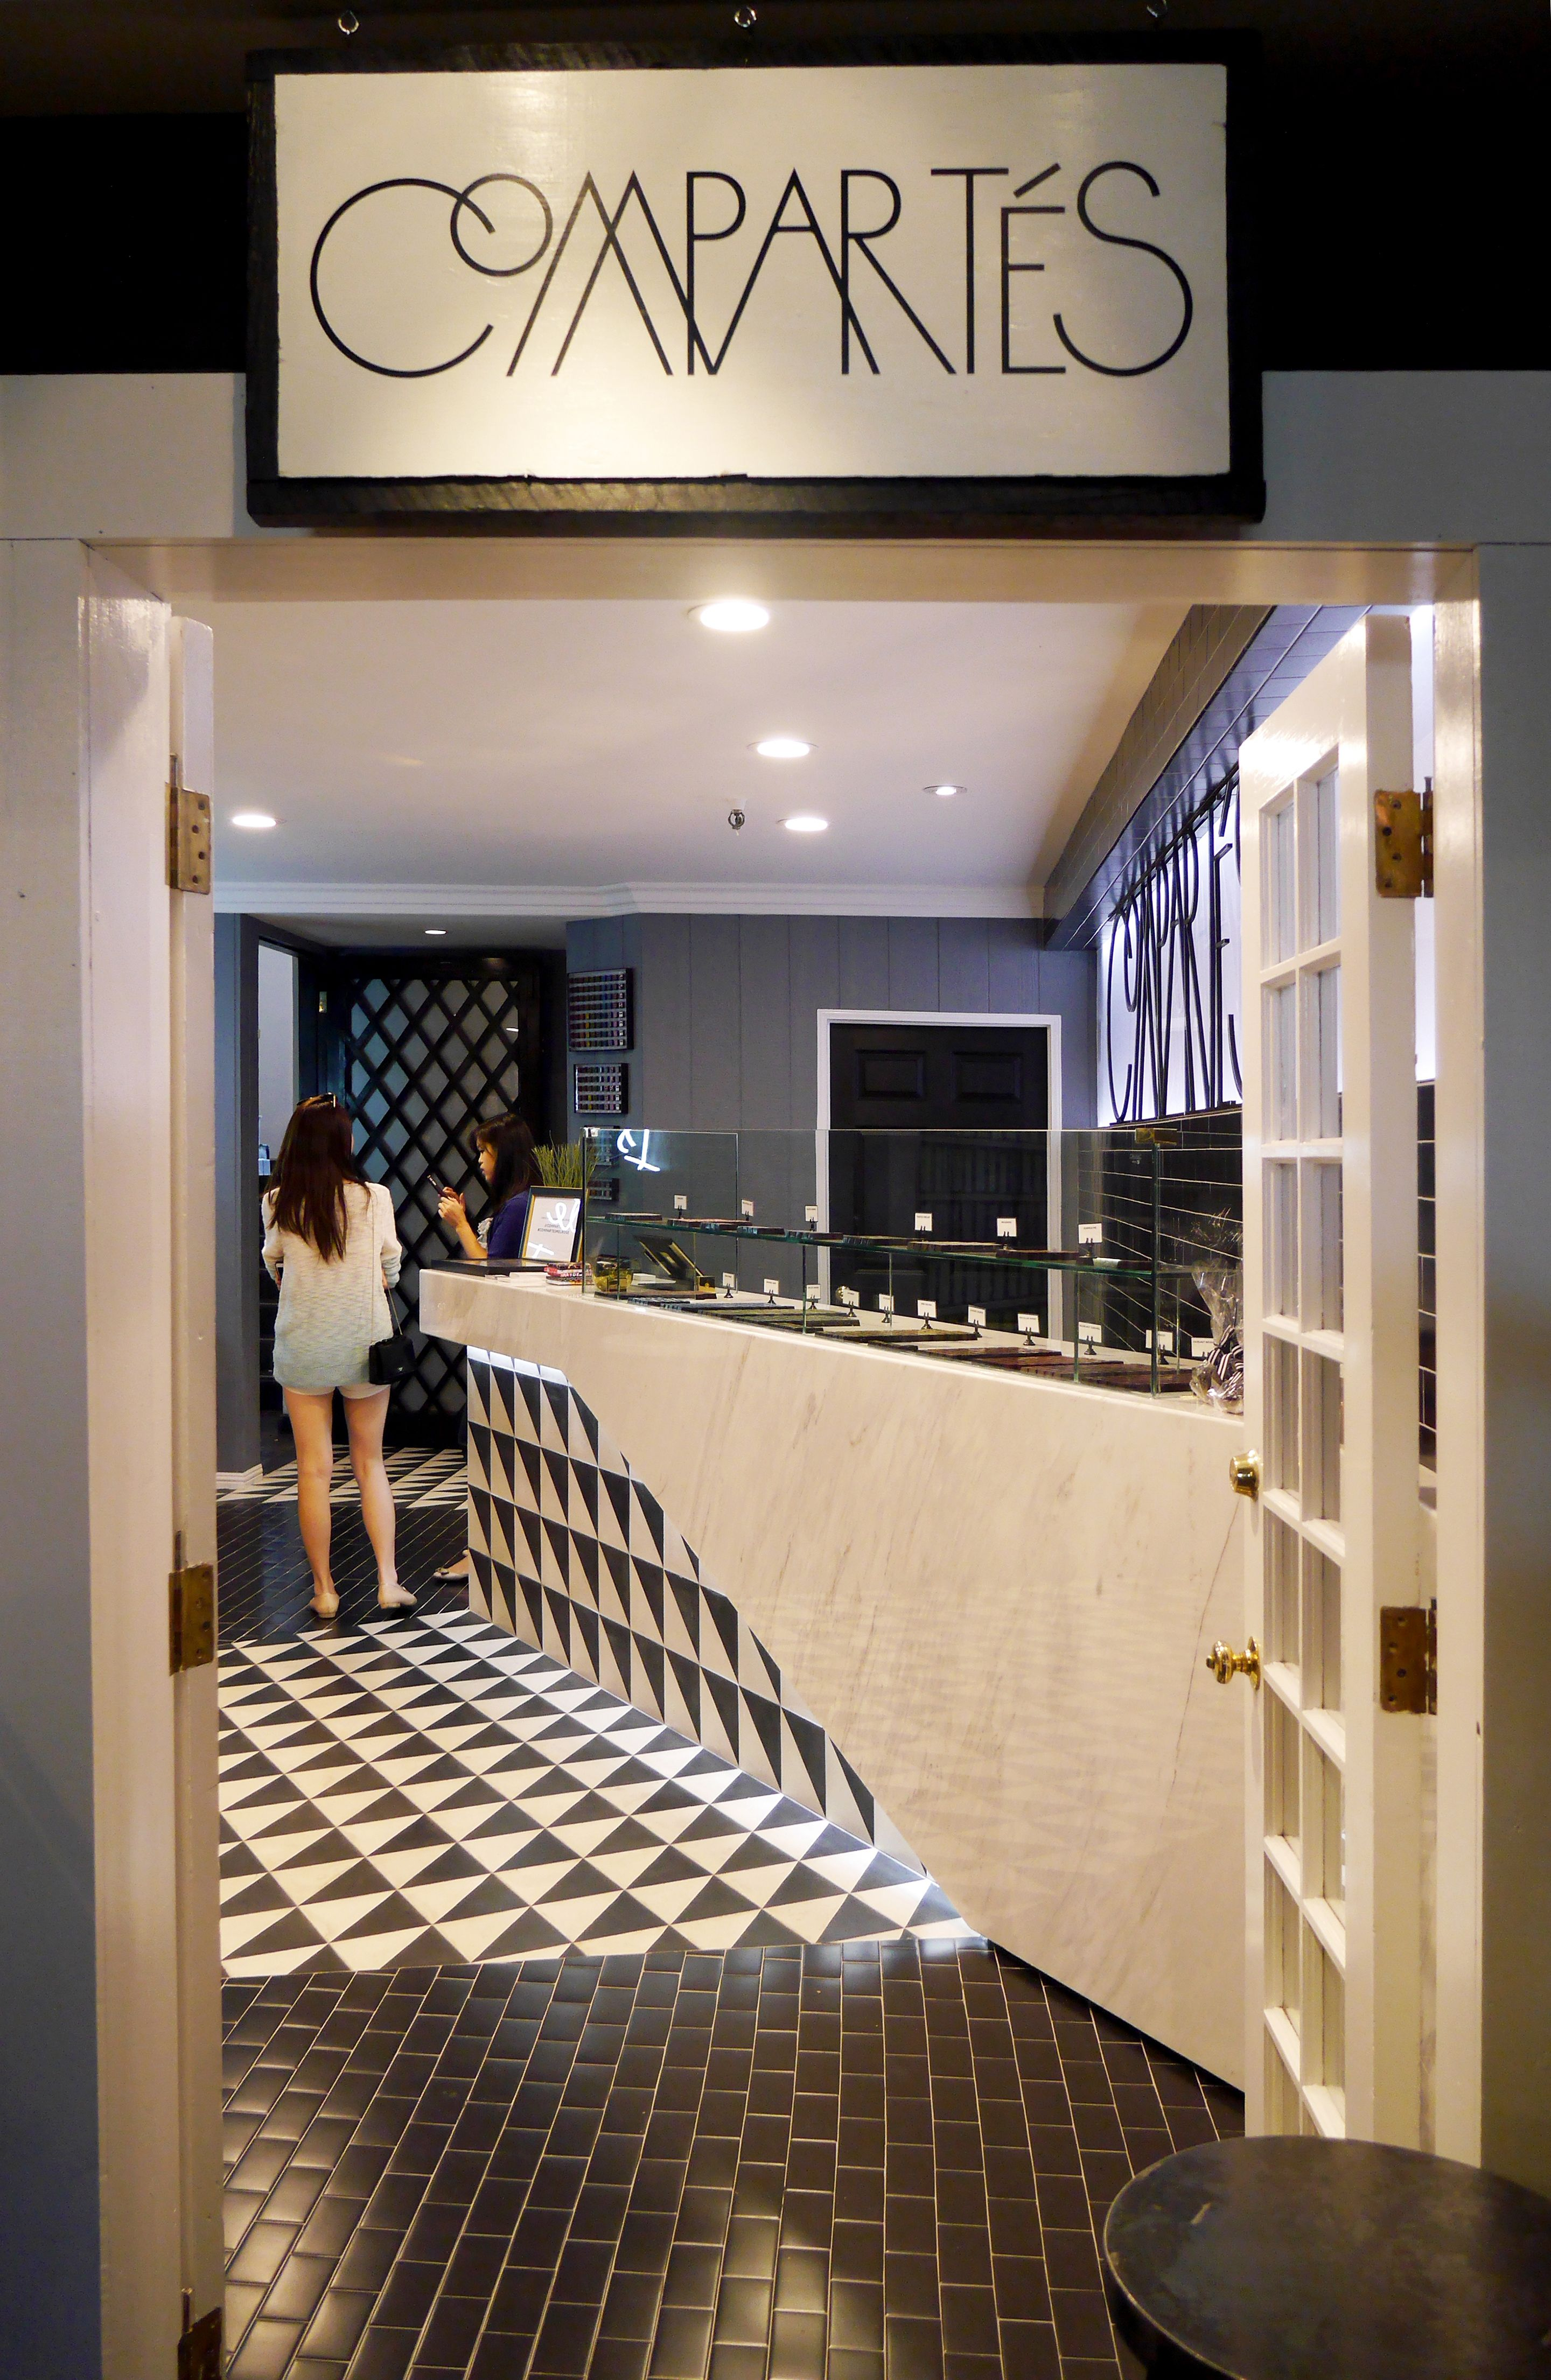 Compartes Melrose Place Marble Counter And Black & White Triangle